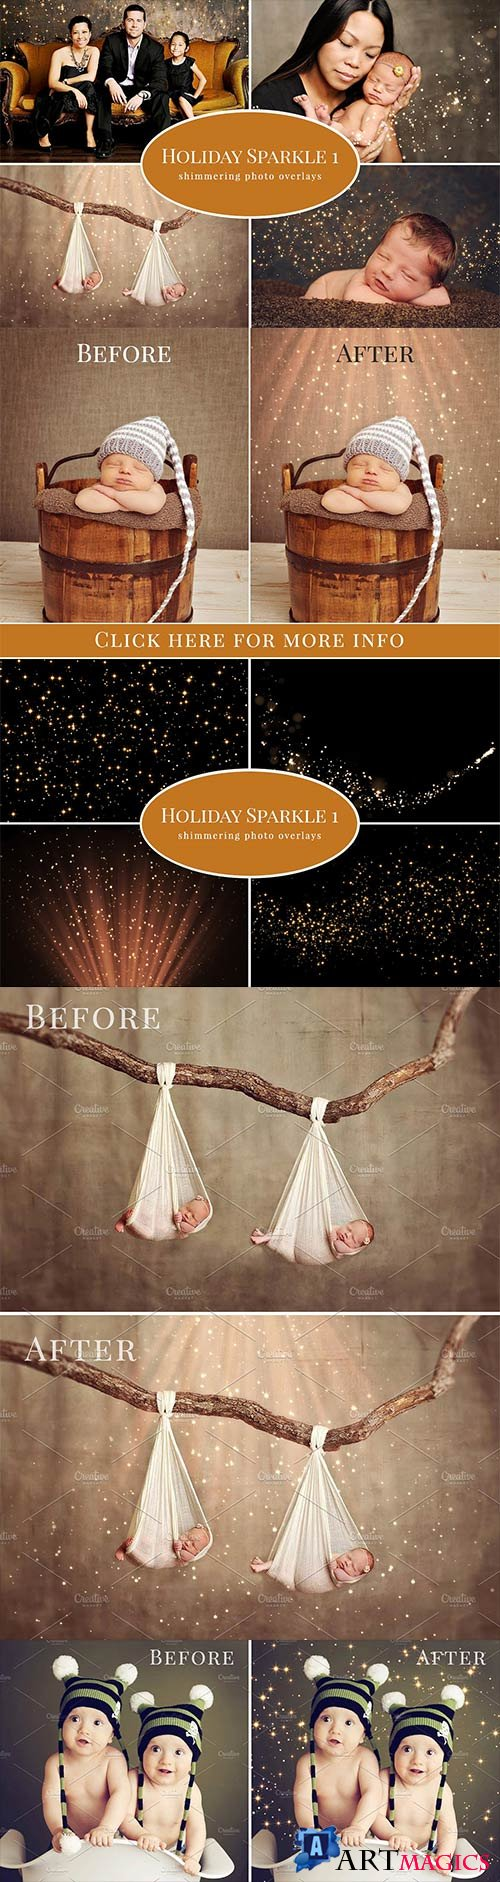 CM - Holiday Sparkle 1 – photo overlays 120919